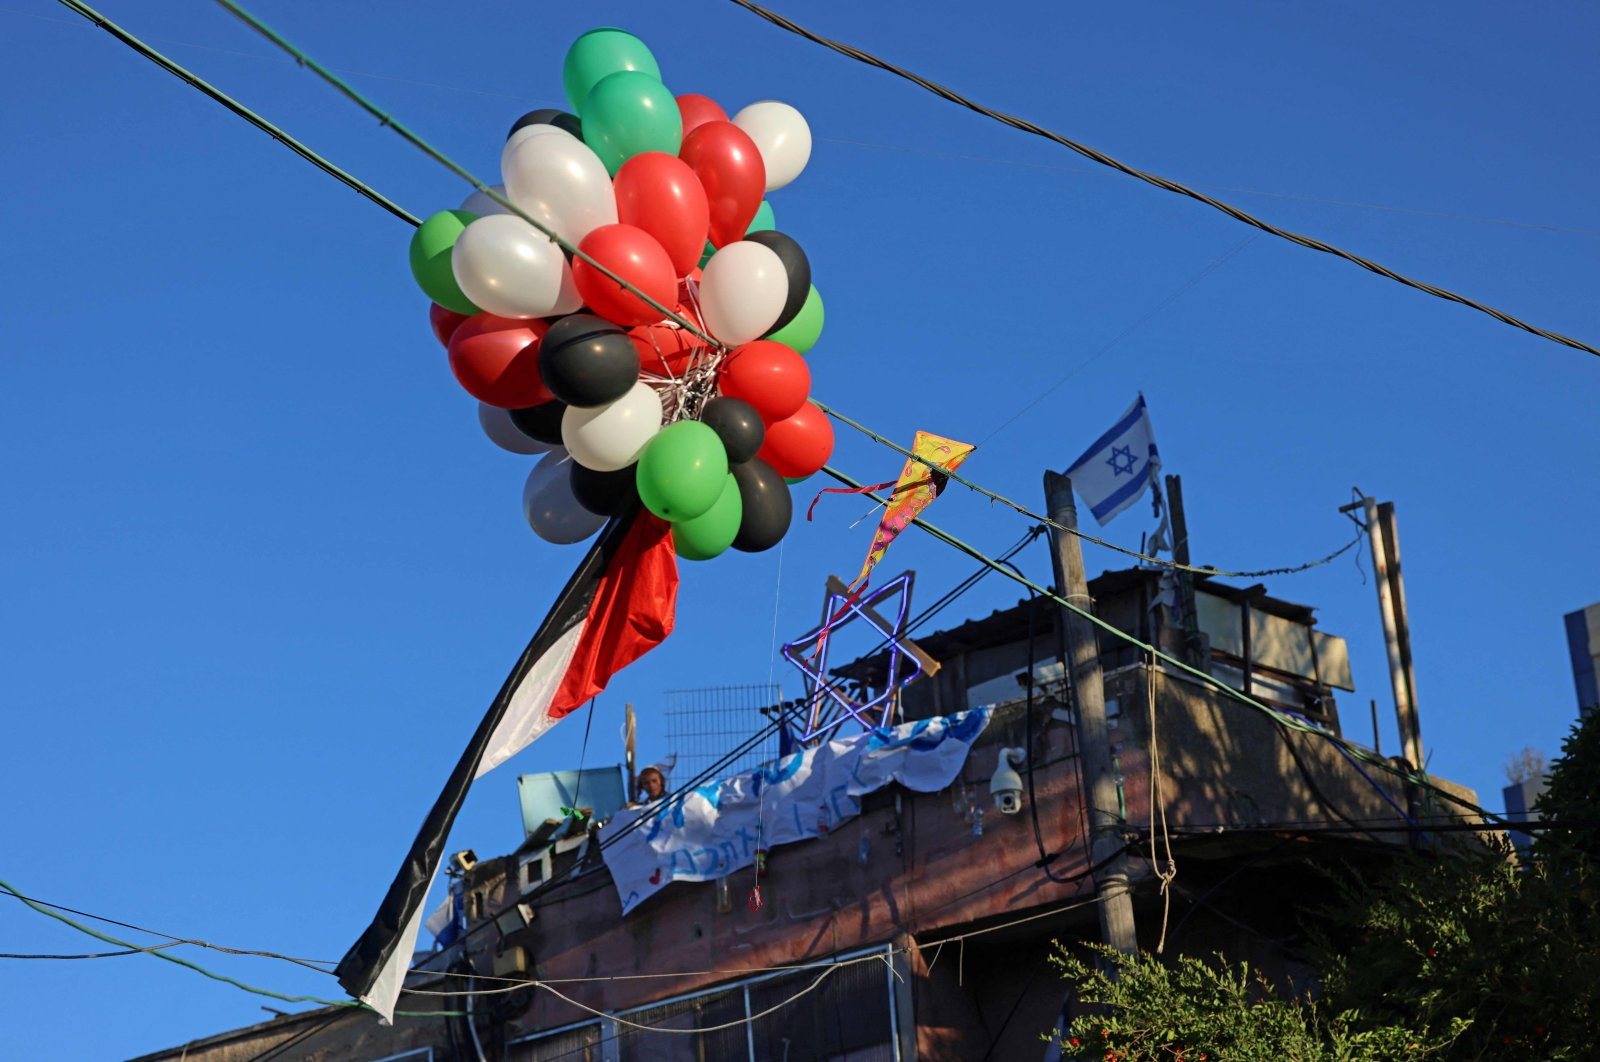 """A Palestinian flag attached to balloons is seen installed in front of the house of an Israeli settler on the 73rd anniversary of the nakba, the """"catastrophe,"""" of Israel's creation in 1948, Sheikh Jarrah, East Jerusalem, occupied Palestine, May 15, 2021. (AFP Photo)"""